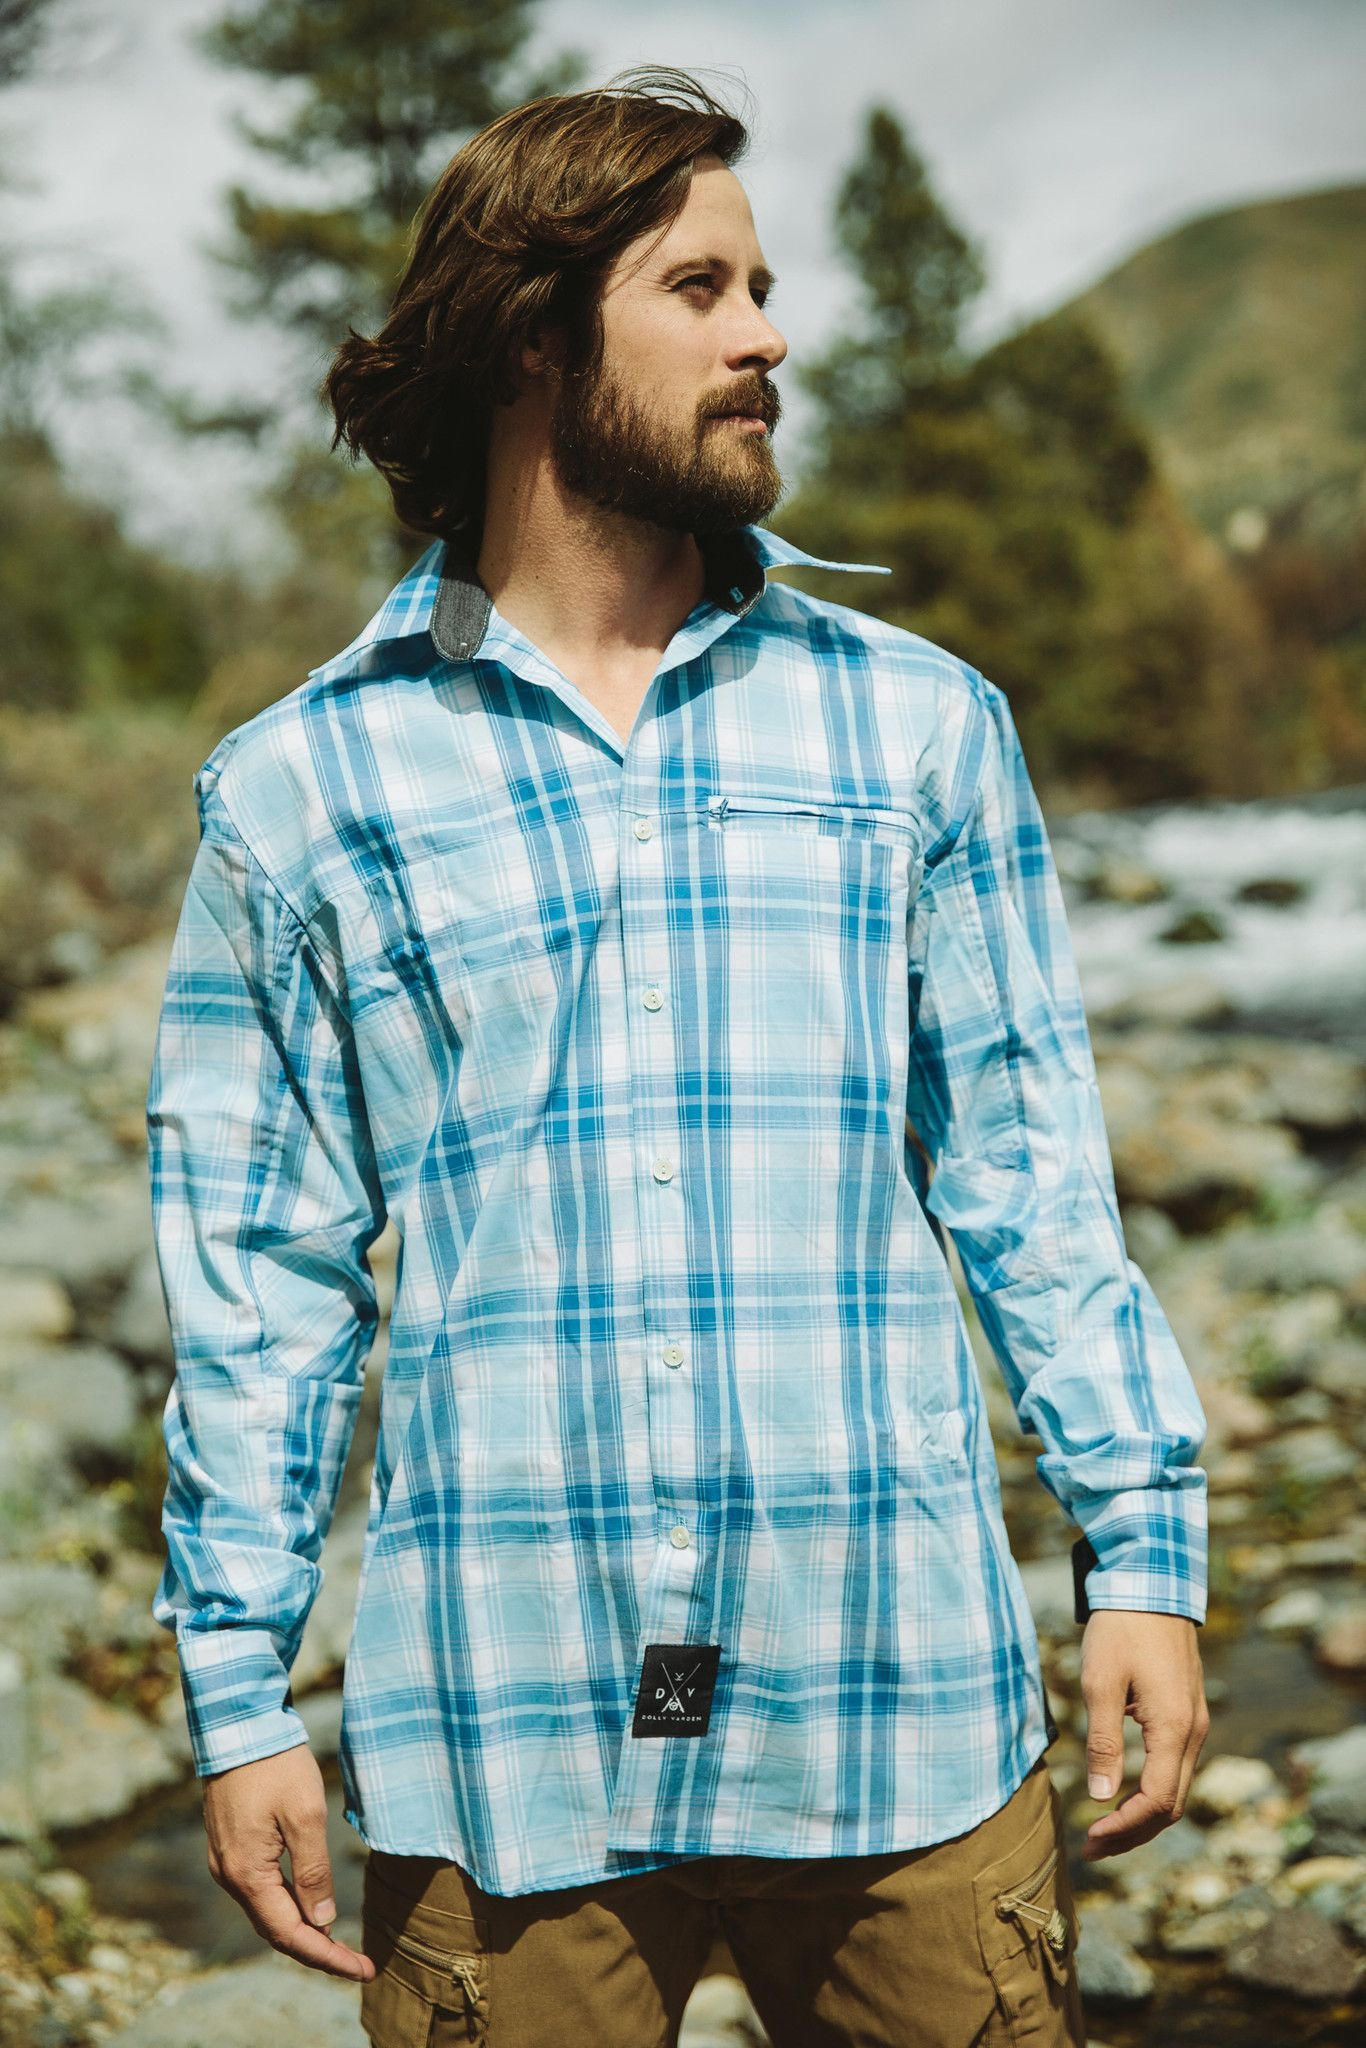 Men's Roaring Fork Shirt - No need to rush home from work to get changed for a weekend in the outdoors, the Roaring Fork's classic look and technical features means you have ability to move from one aspect of your life seamlessly into another.  Hidden zippered pockets perfect for storage. Anti-odor technology will be sure to keep you smelling fresh from dawn till dusk.